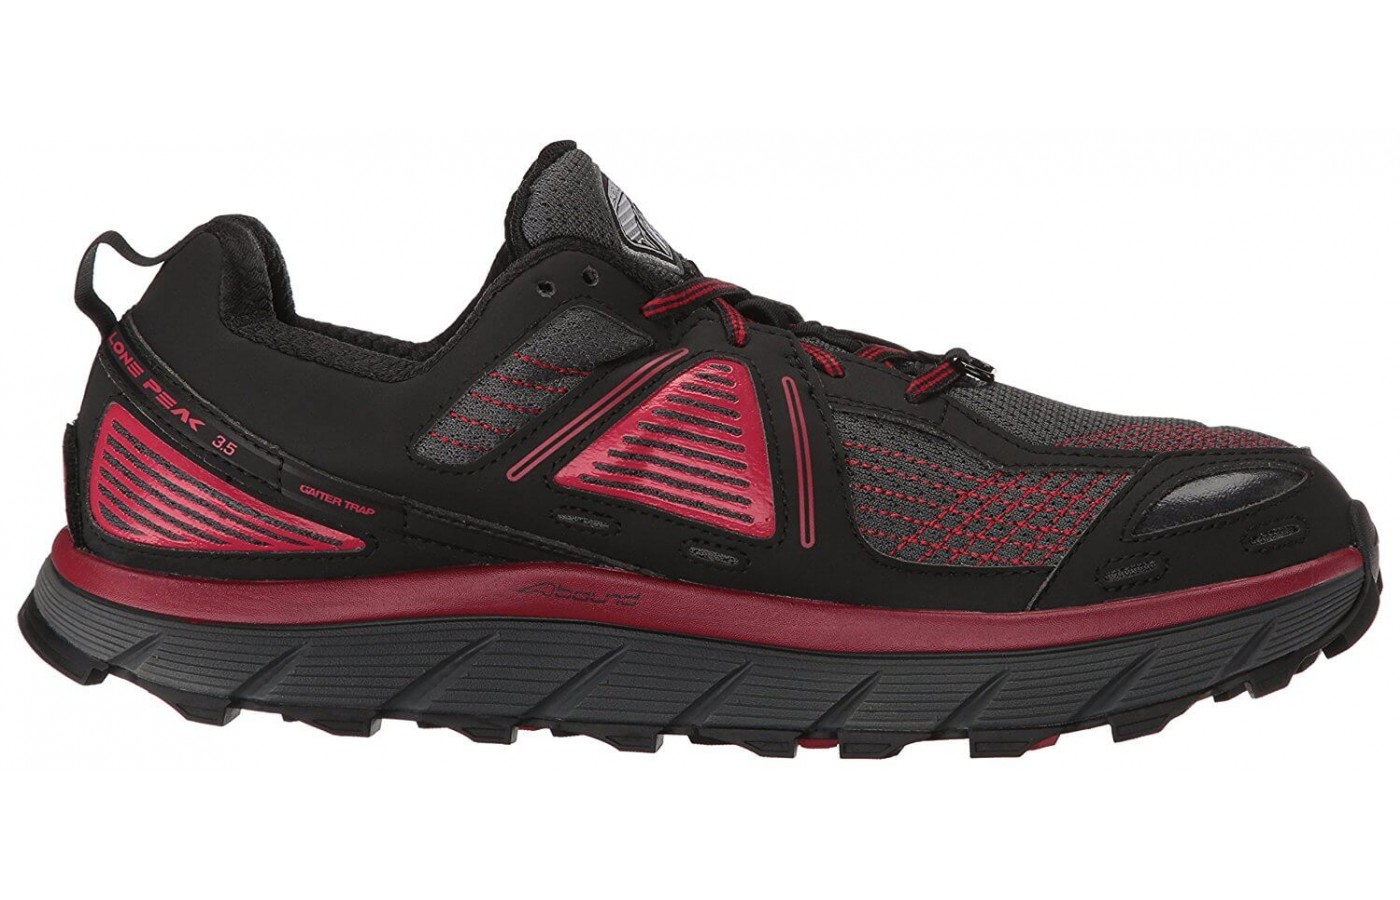 The Altra Lone Peak 3.5 has a new Air Mesh upper